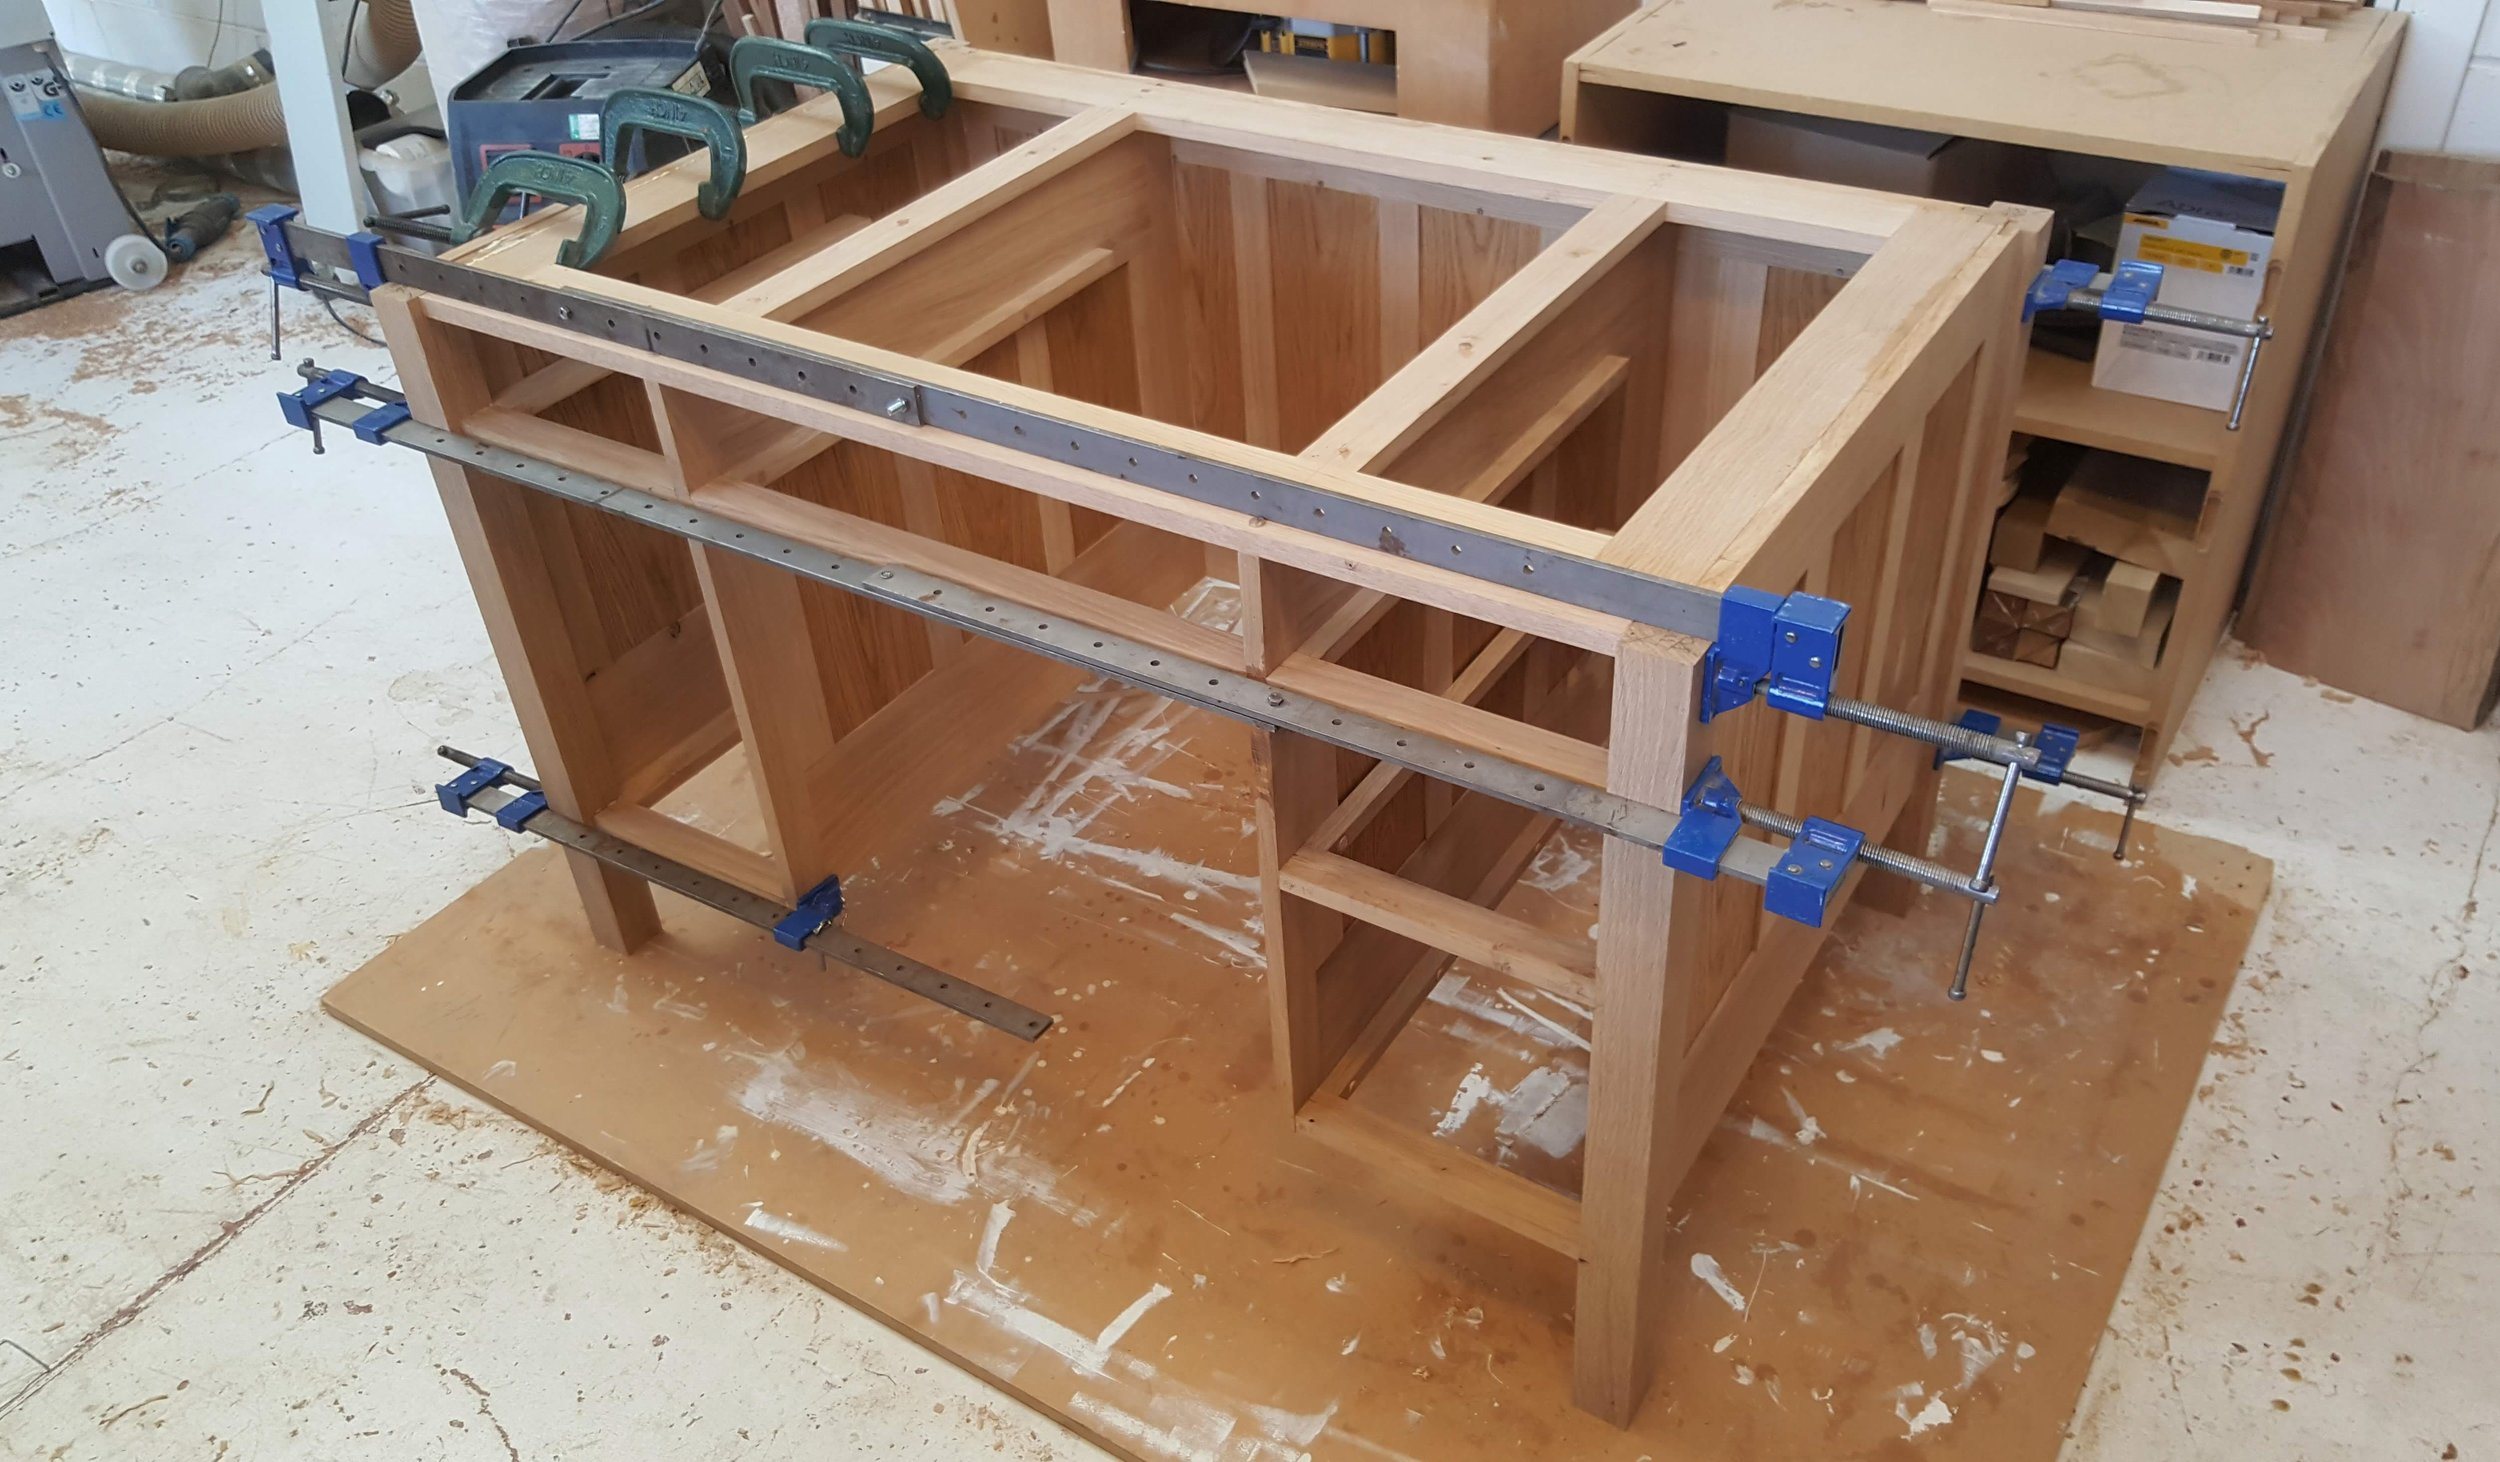 Heliconia_Furniture_Arts&Crafts_Desk_GlueUpIn3Stages3.jpg